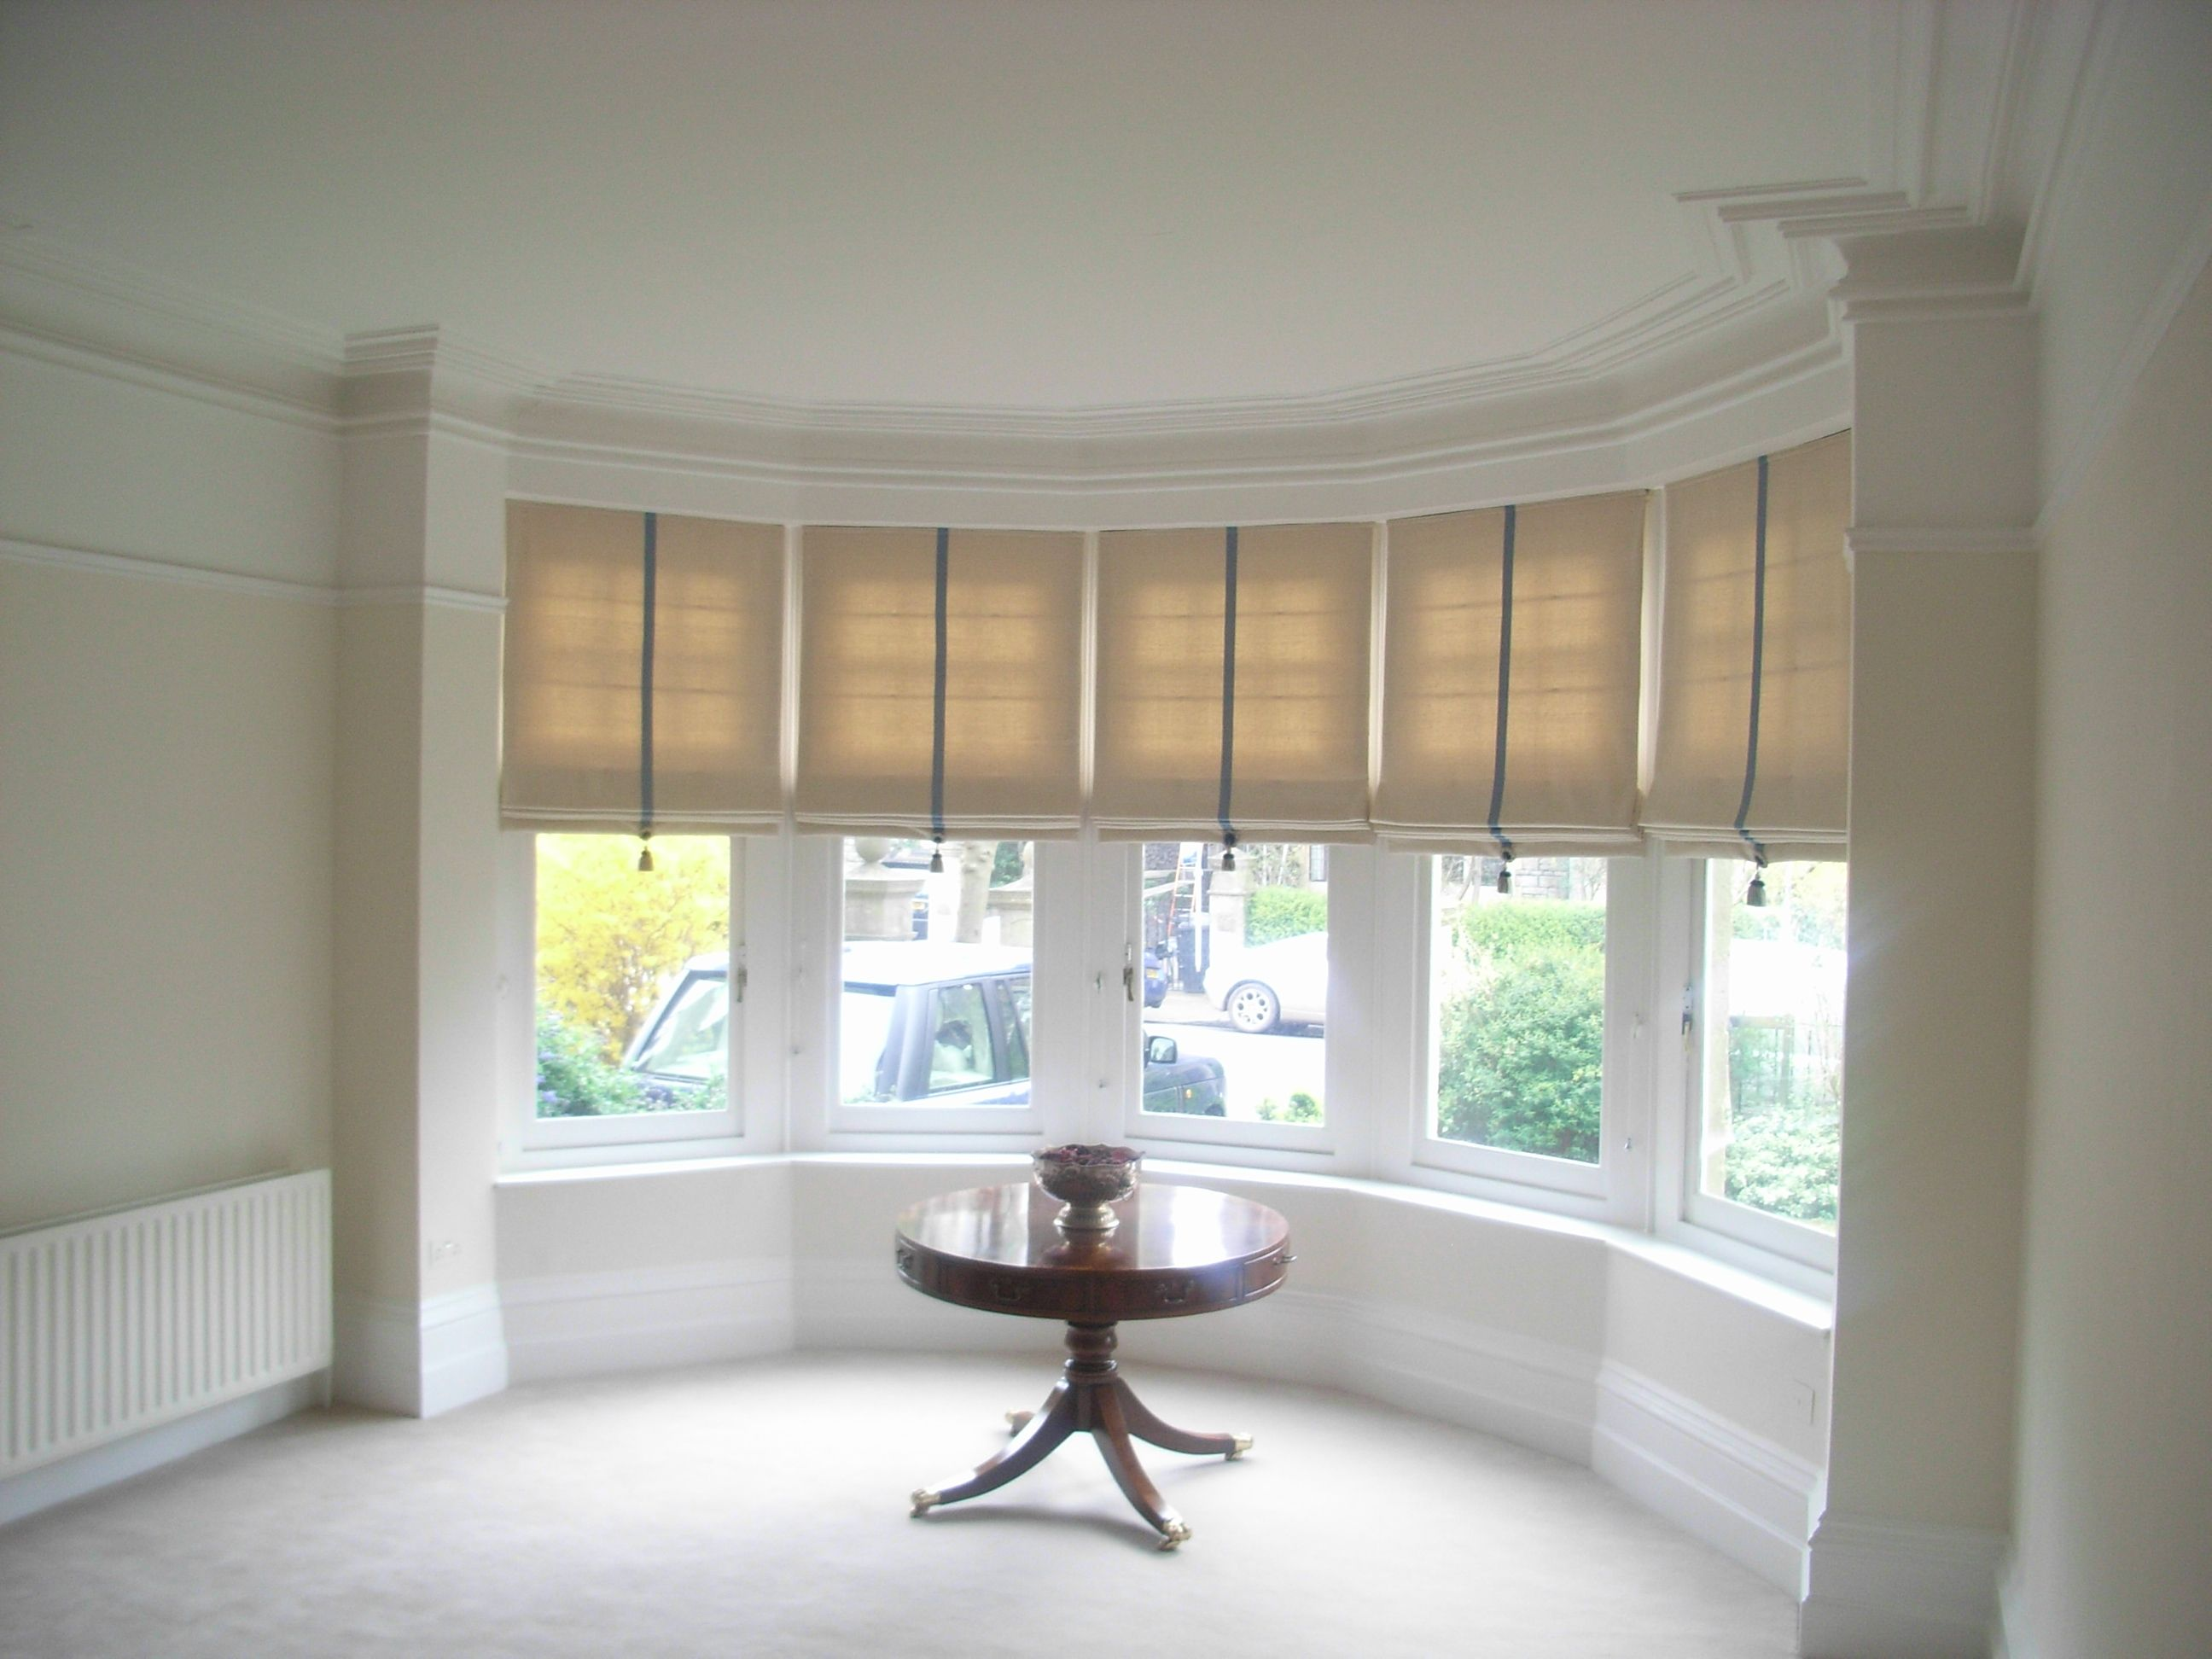 Marvelous Best Curtains Designs U2013 Accessories   Interior Design   Do You Want To Put  A Substantial Touch Of Elegance On Your Design? The Use Of Curtains In The  Best ...